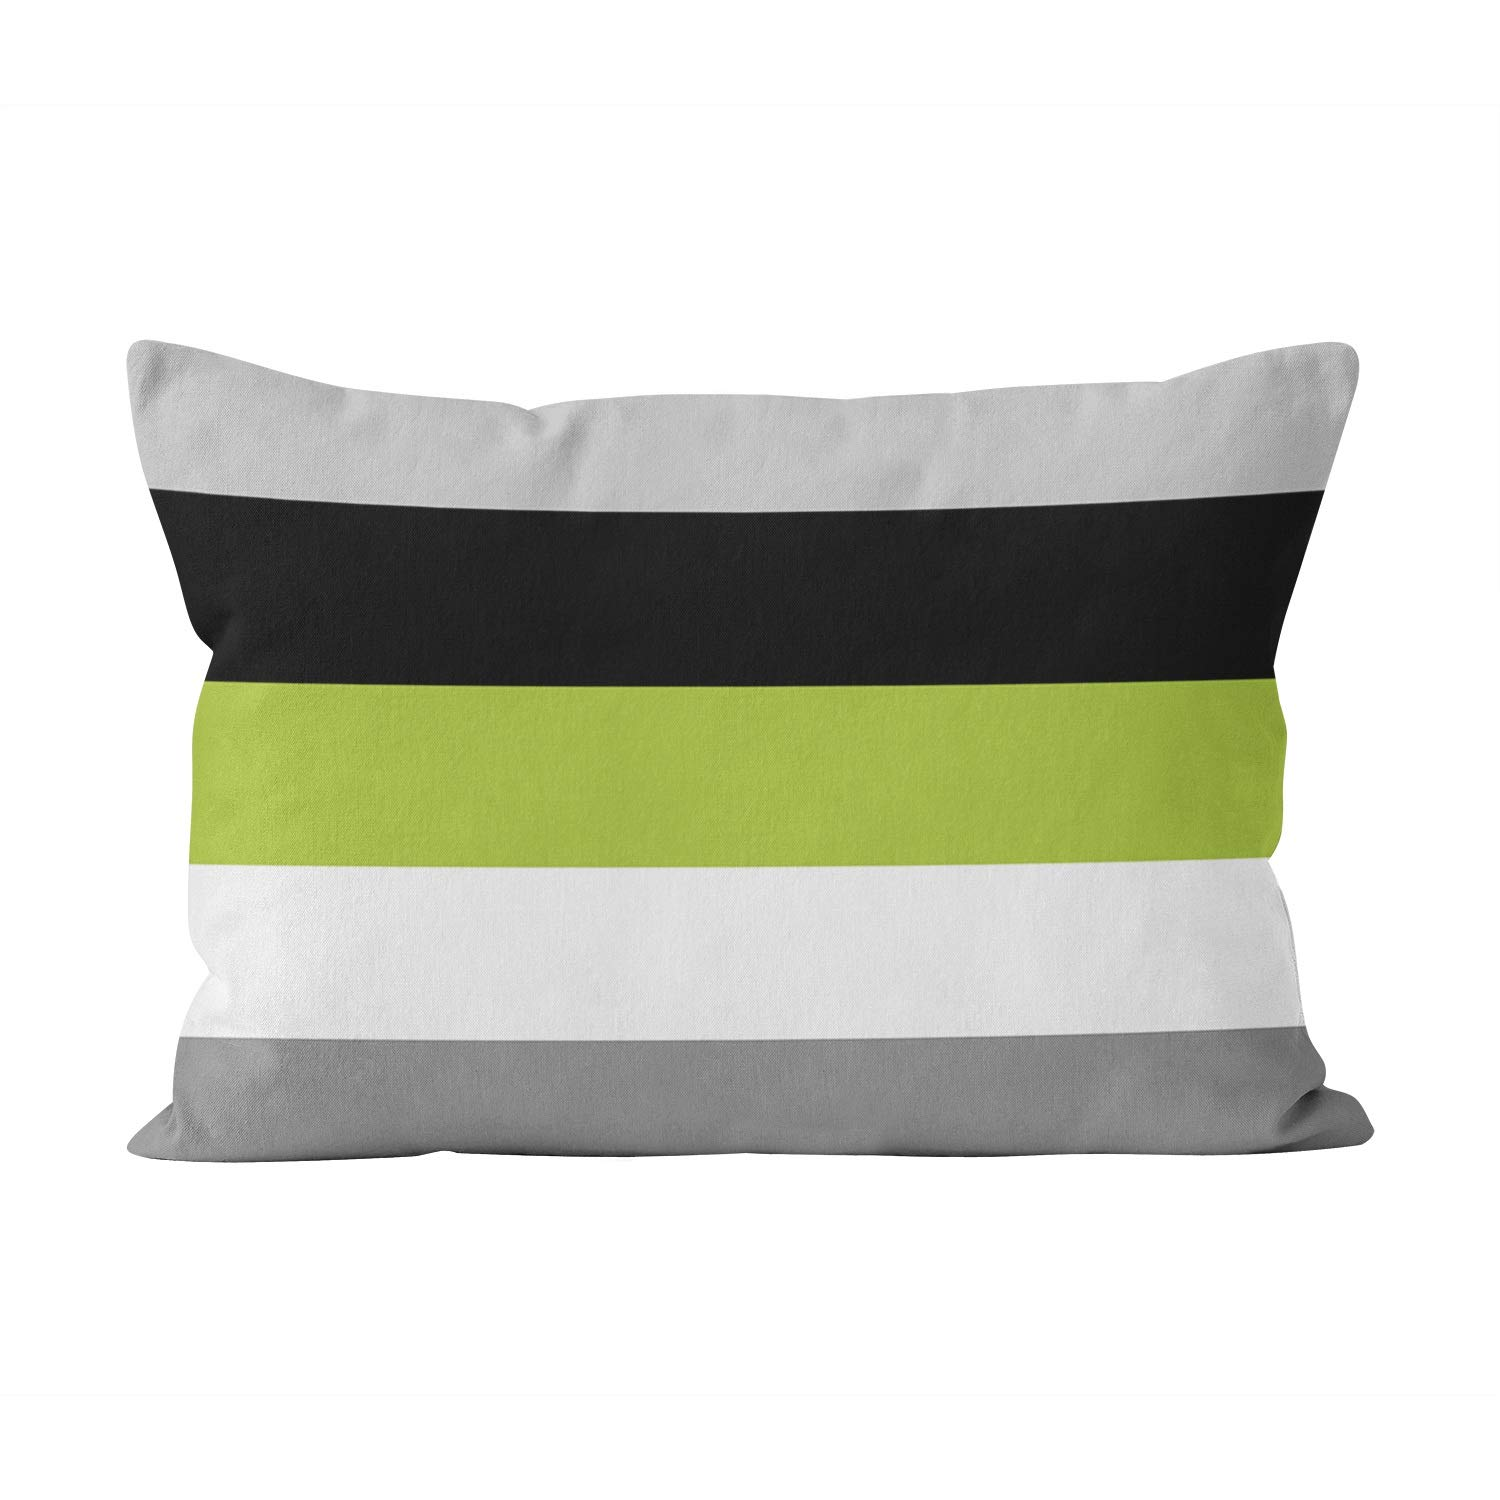 Sokiiy Color Block Lime Green Gray Black and White Beauty Hidden Zipper Home Decorative Rectangle Throw Pillow Cover Cushion Case Boudoir 12x20 Inch One Side Design Printed Pillowcase